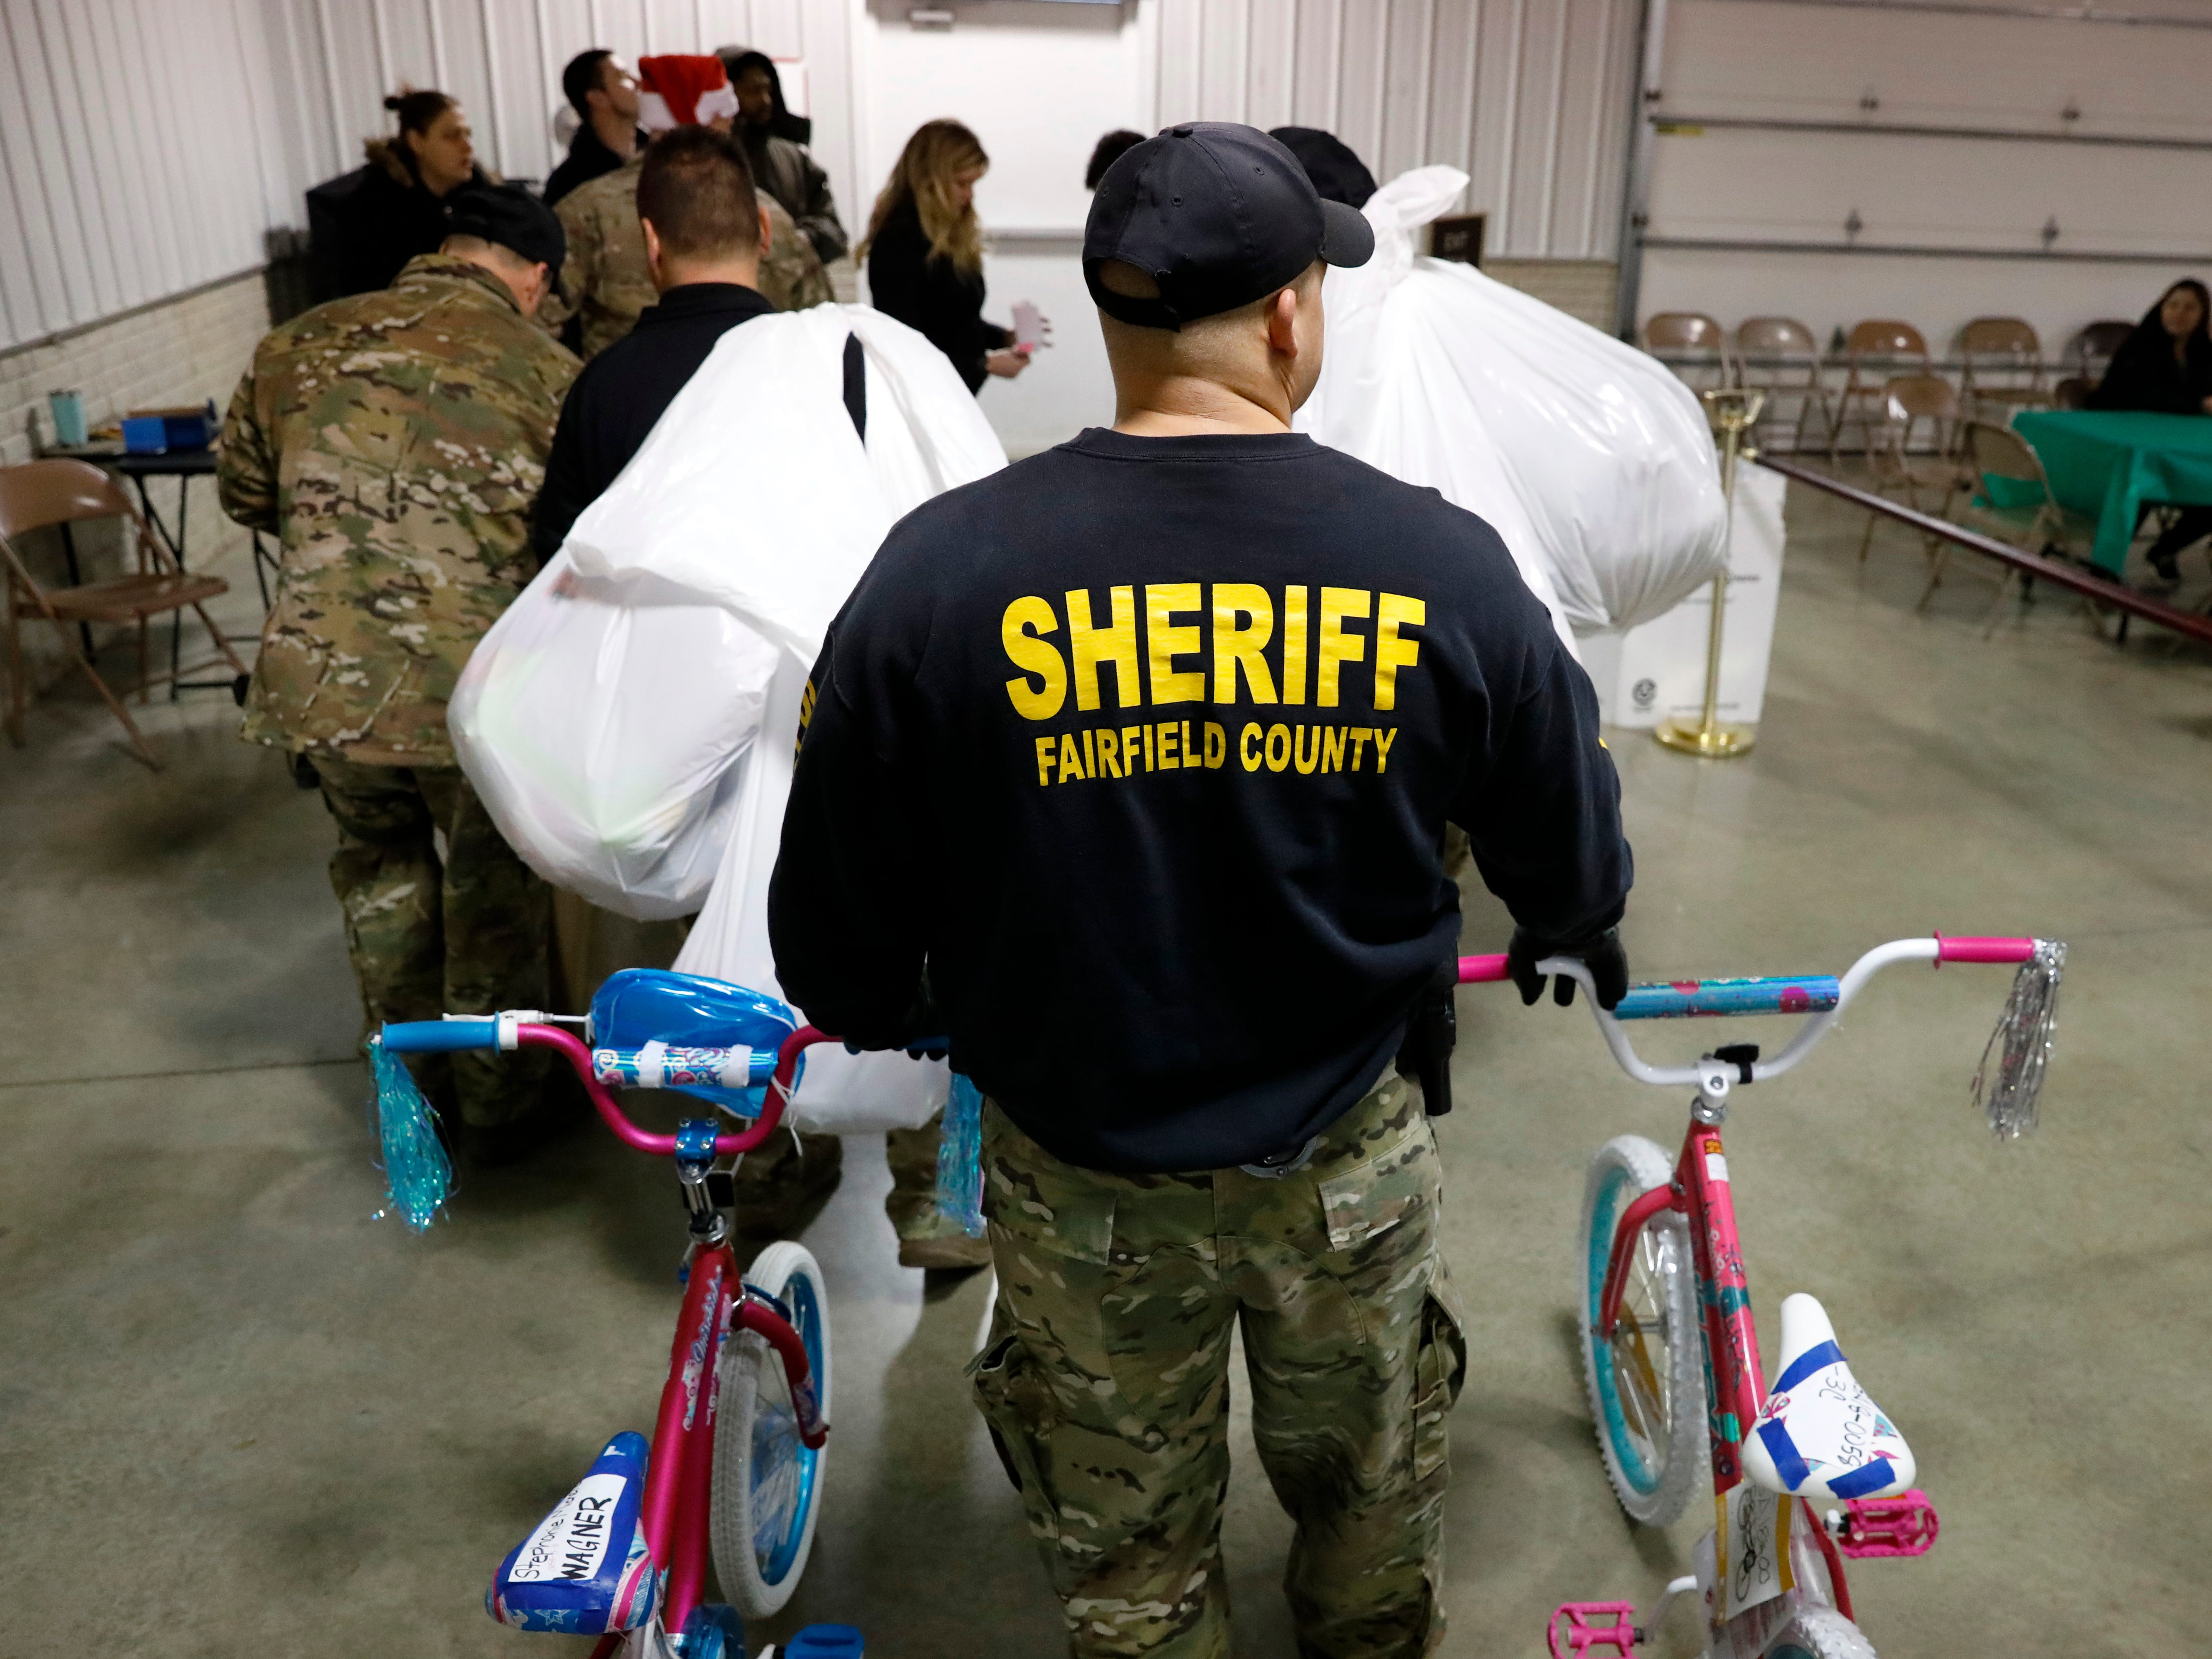 Members of the Fairfield County Sheriff's Office S.W.A.T. team help carry out presents to recipients' vehicles Friday, Dec. 21, 2018, during the Salvation Army of Fairfield County's Christmas Cheer distribution day at the Fairfield County Fairgrounds in Lancaster. This year volunteers donated gifts for more than 800 children throughout Fairfield County through the Salvation Army.